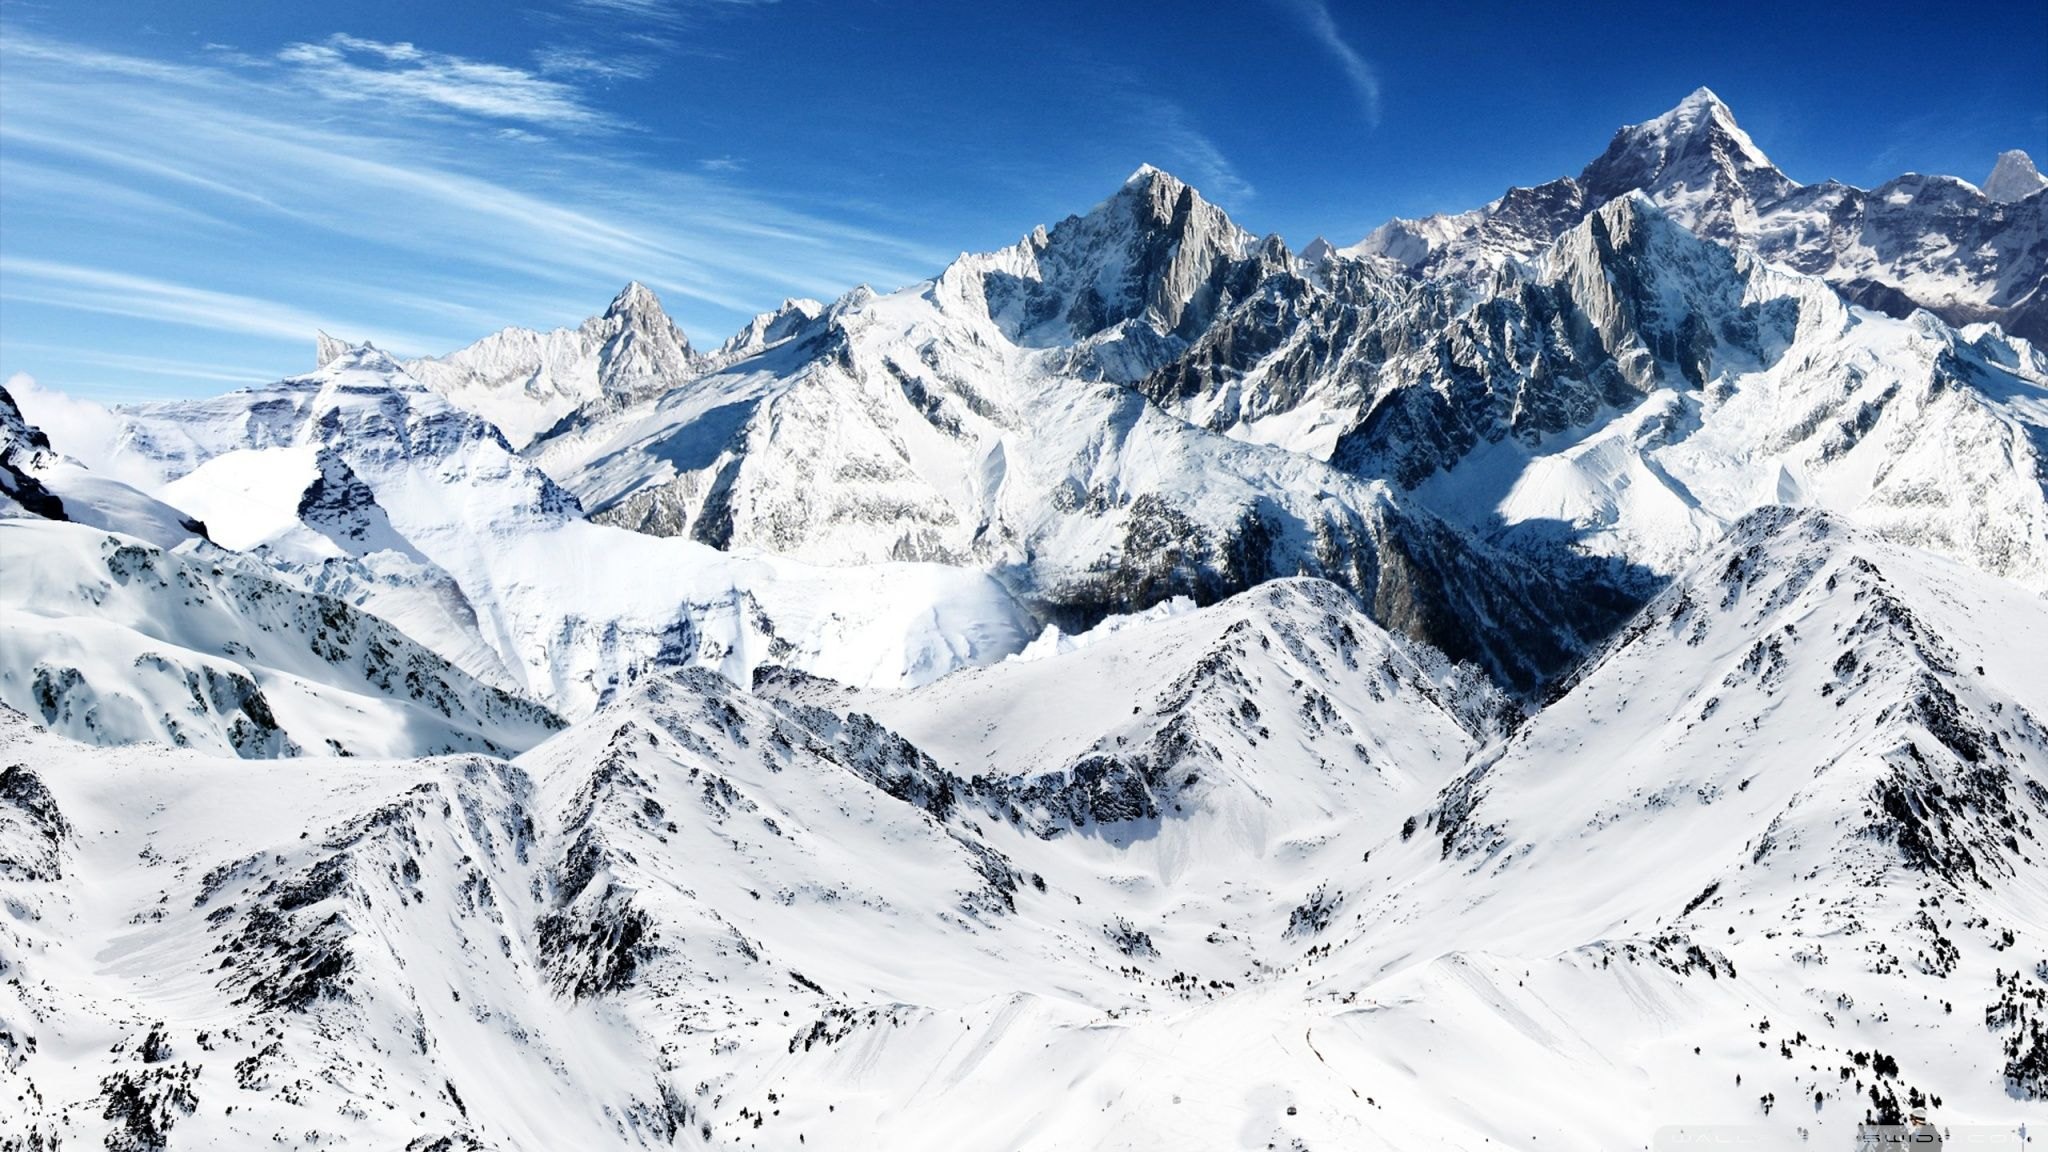 Find Out Snow Mountain Wallpapers High Definition As Wallpaper Hd On Sotoak Com Iphone Android Wa In 2020 Mountain Wallpaper Landscape Wallpaper Mountain Landscape